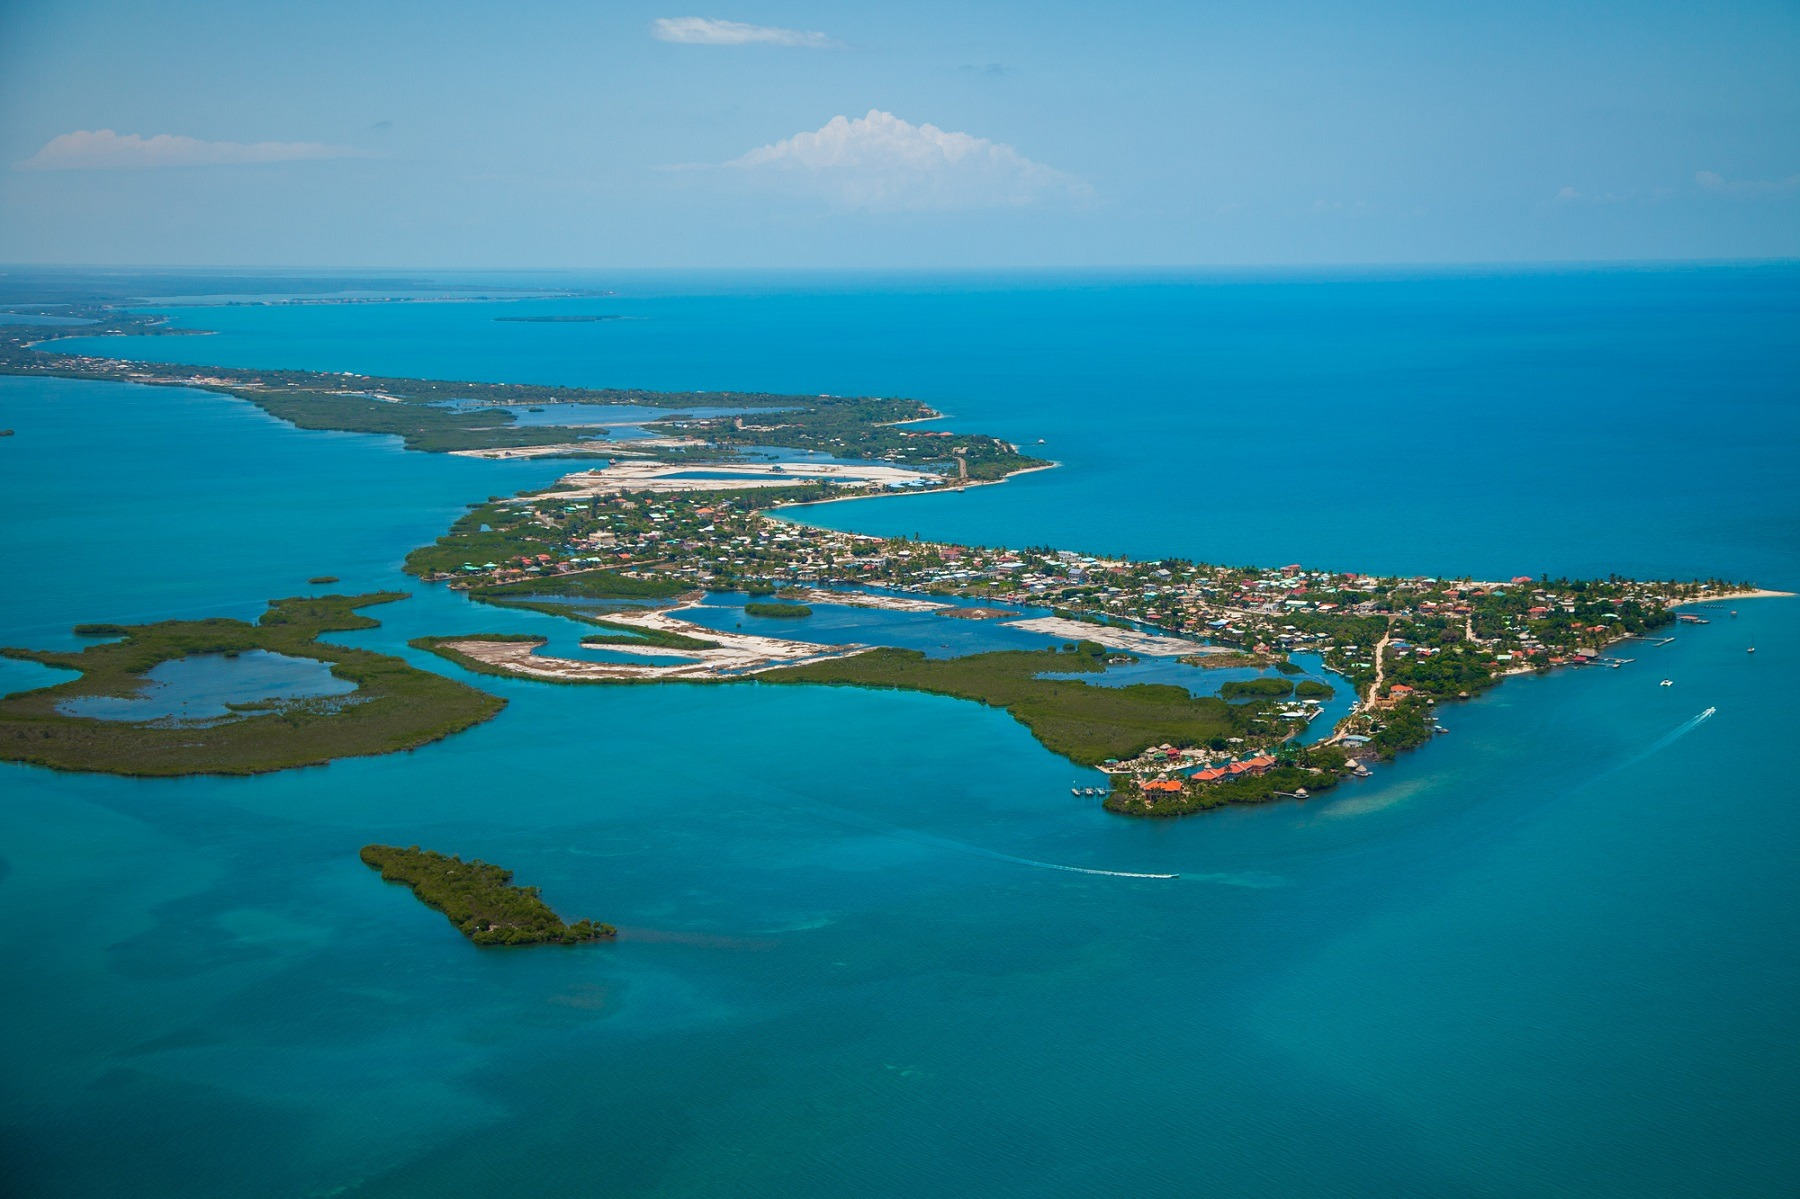 Top 5 Destinations in Belize to Ring in the New Year